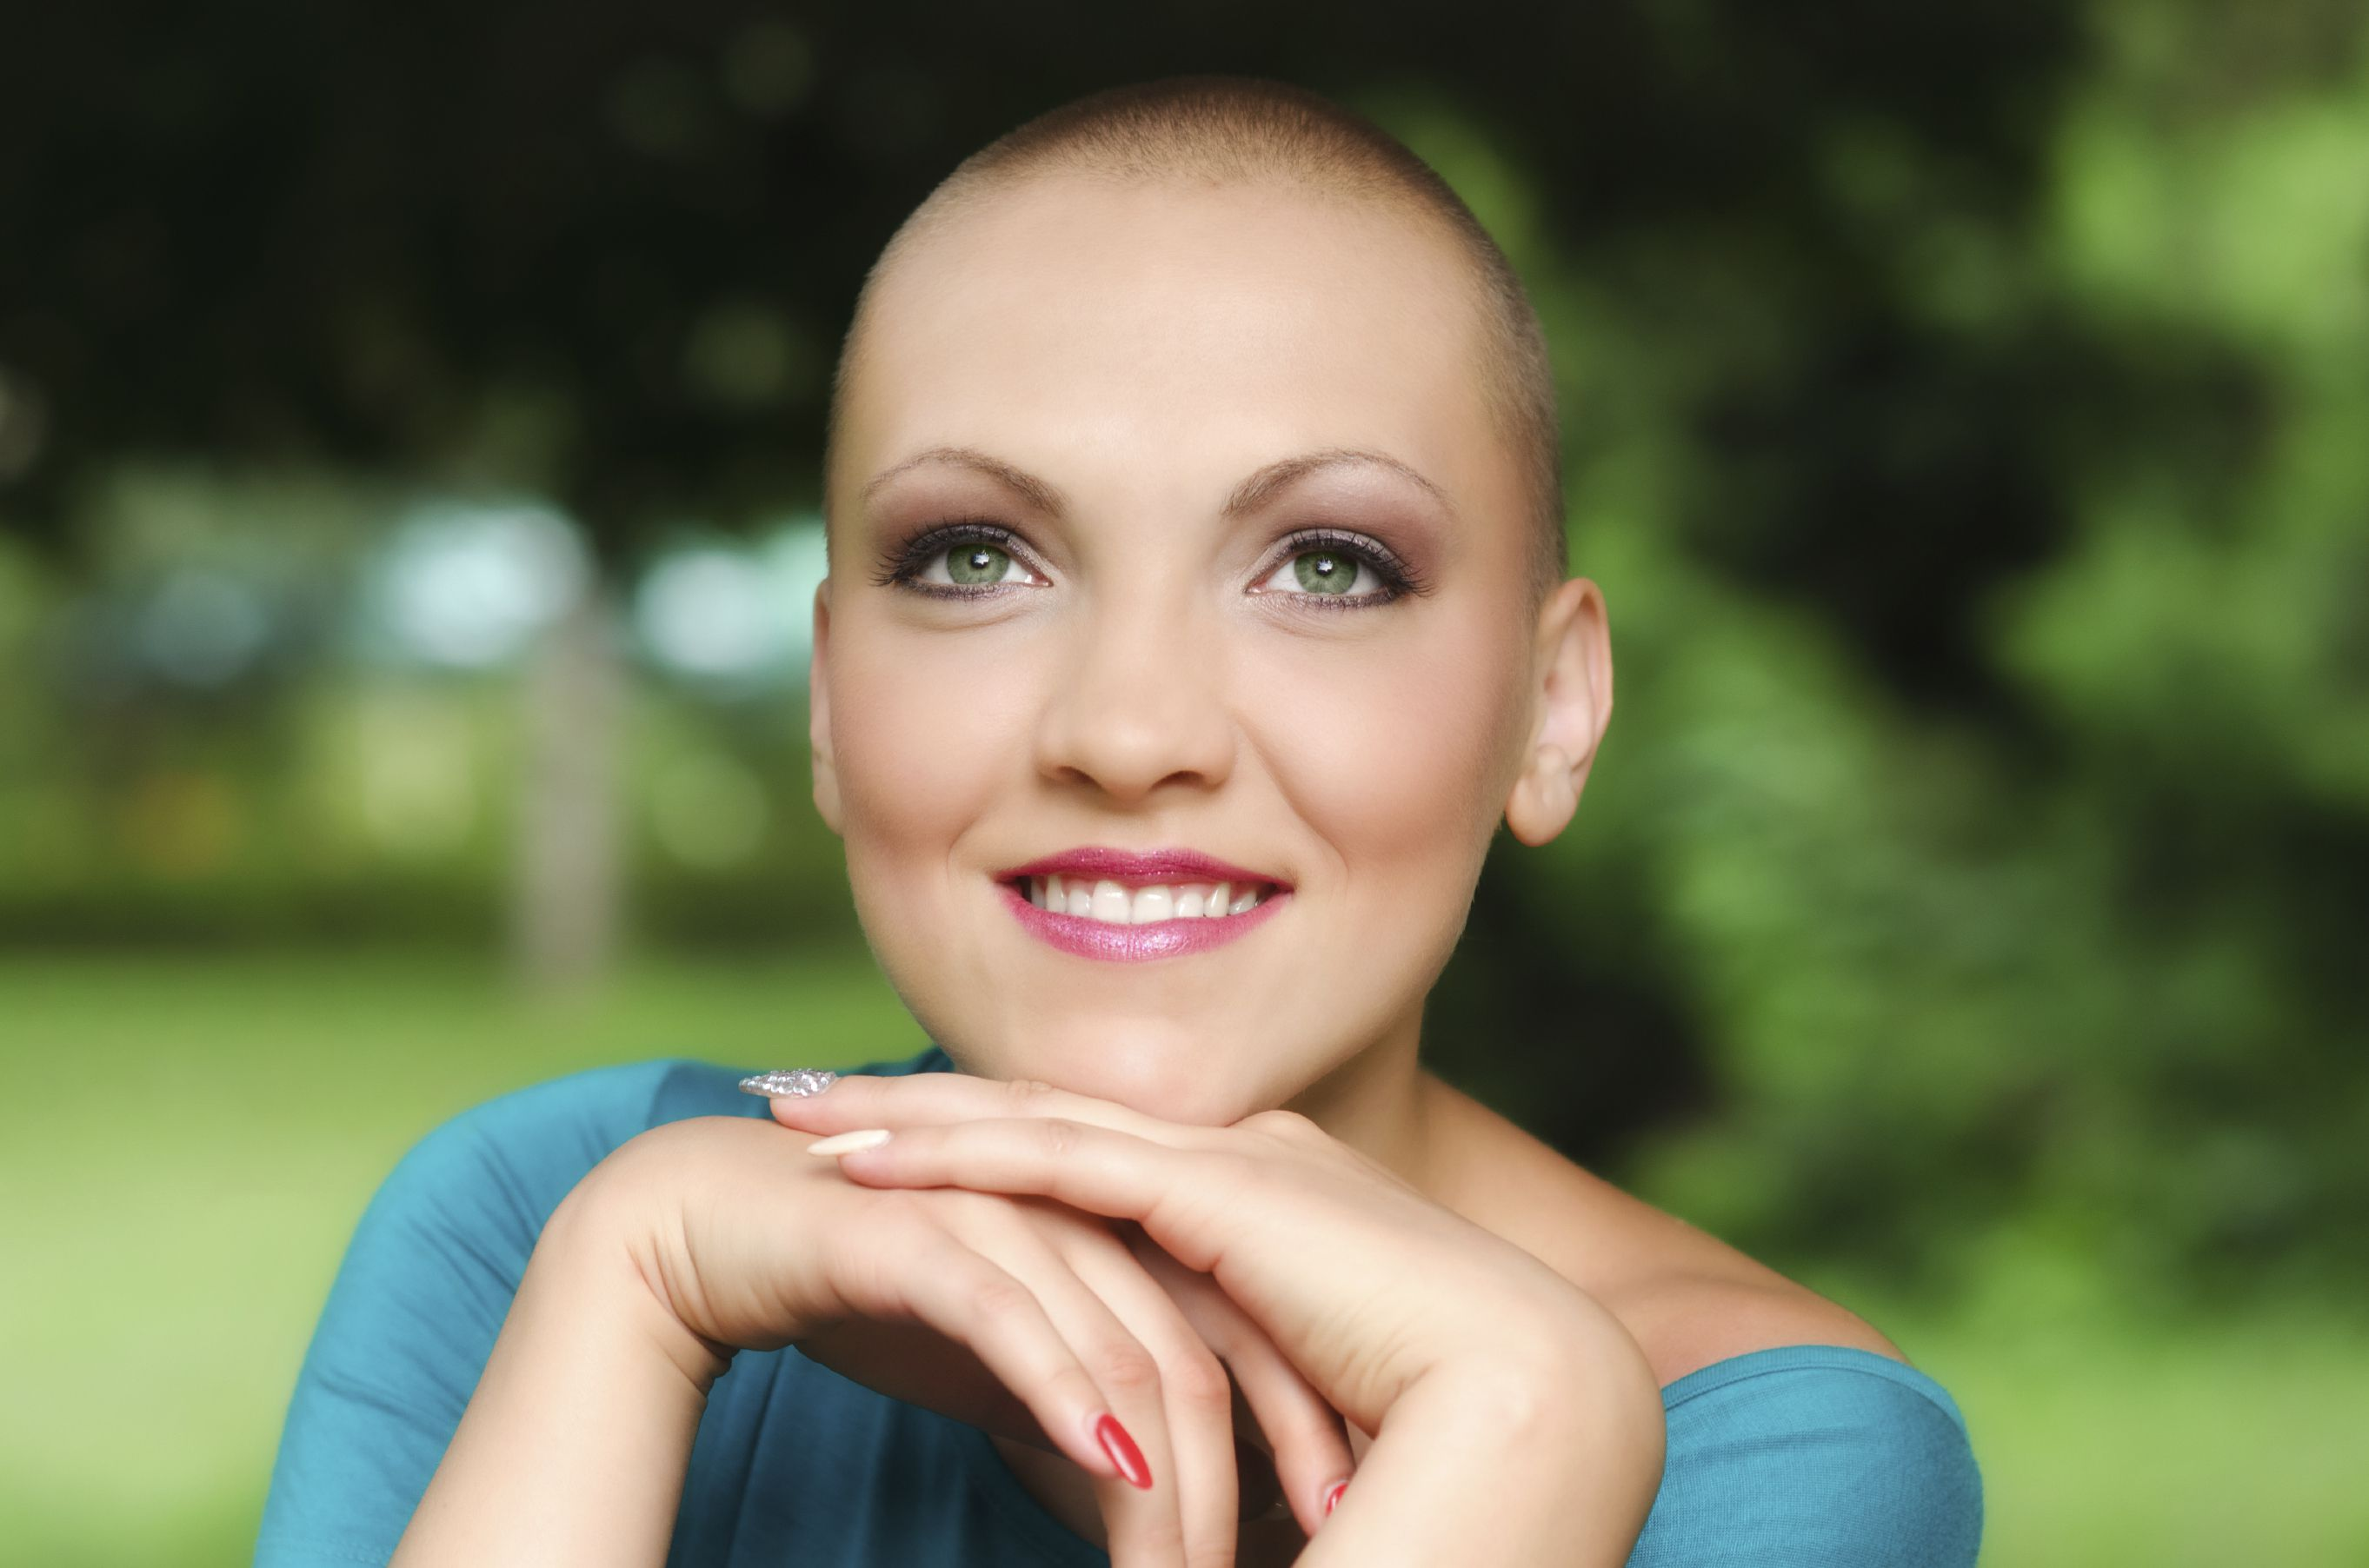 Preventing Hair Loss From Chemotherapy: Methods and Issues